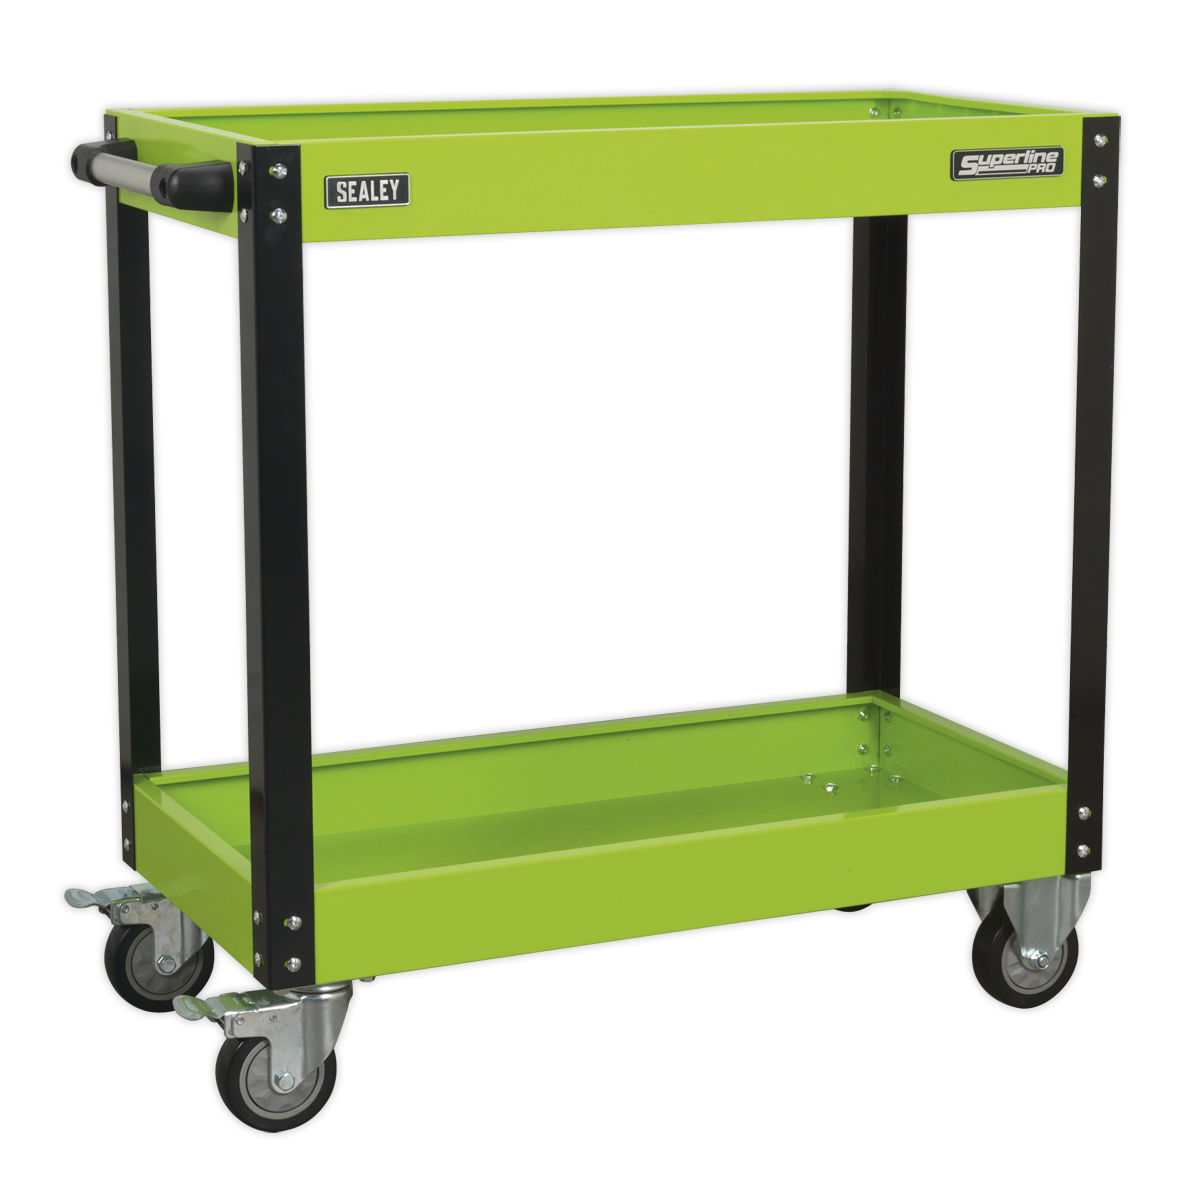 Workshop Trolley 2-Level Heavy-Duty - Hi-Vis Grün   SEALEY CX109HV by Sealey